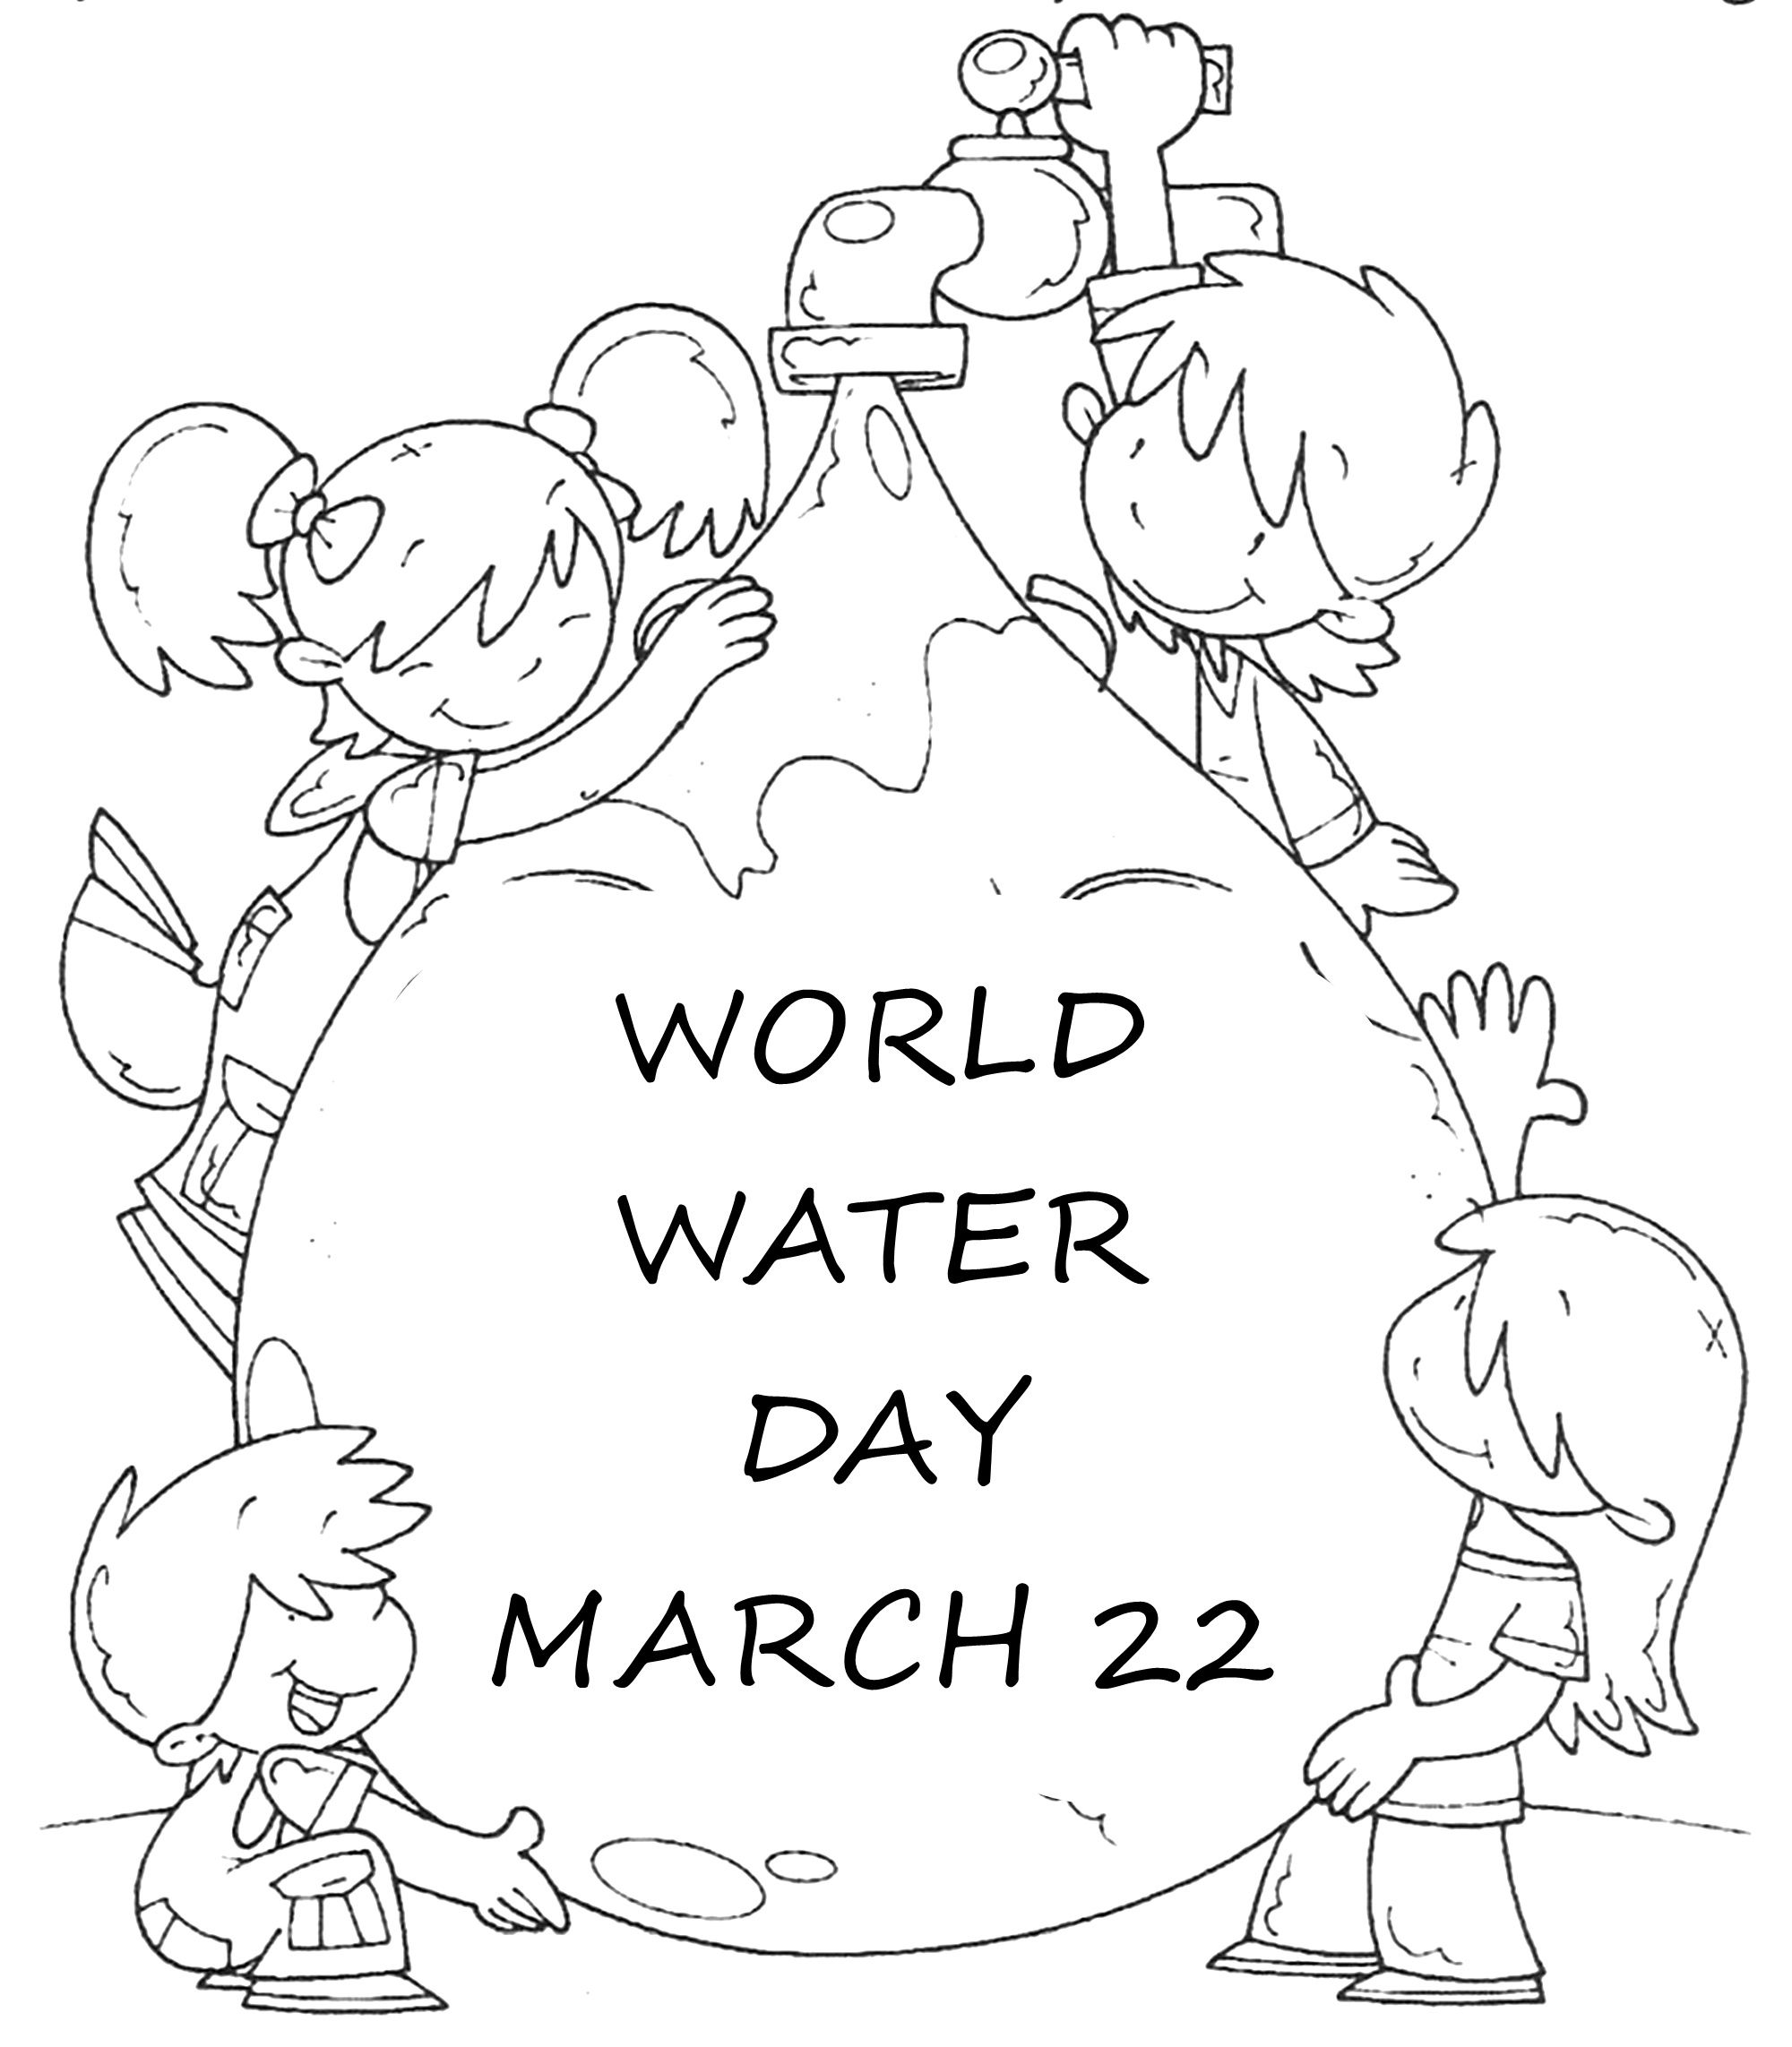 water day coloring sheets world water day 22 march coloring page water drop sheets day water coloring